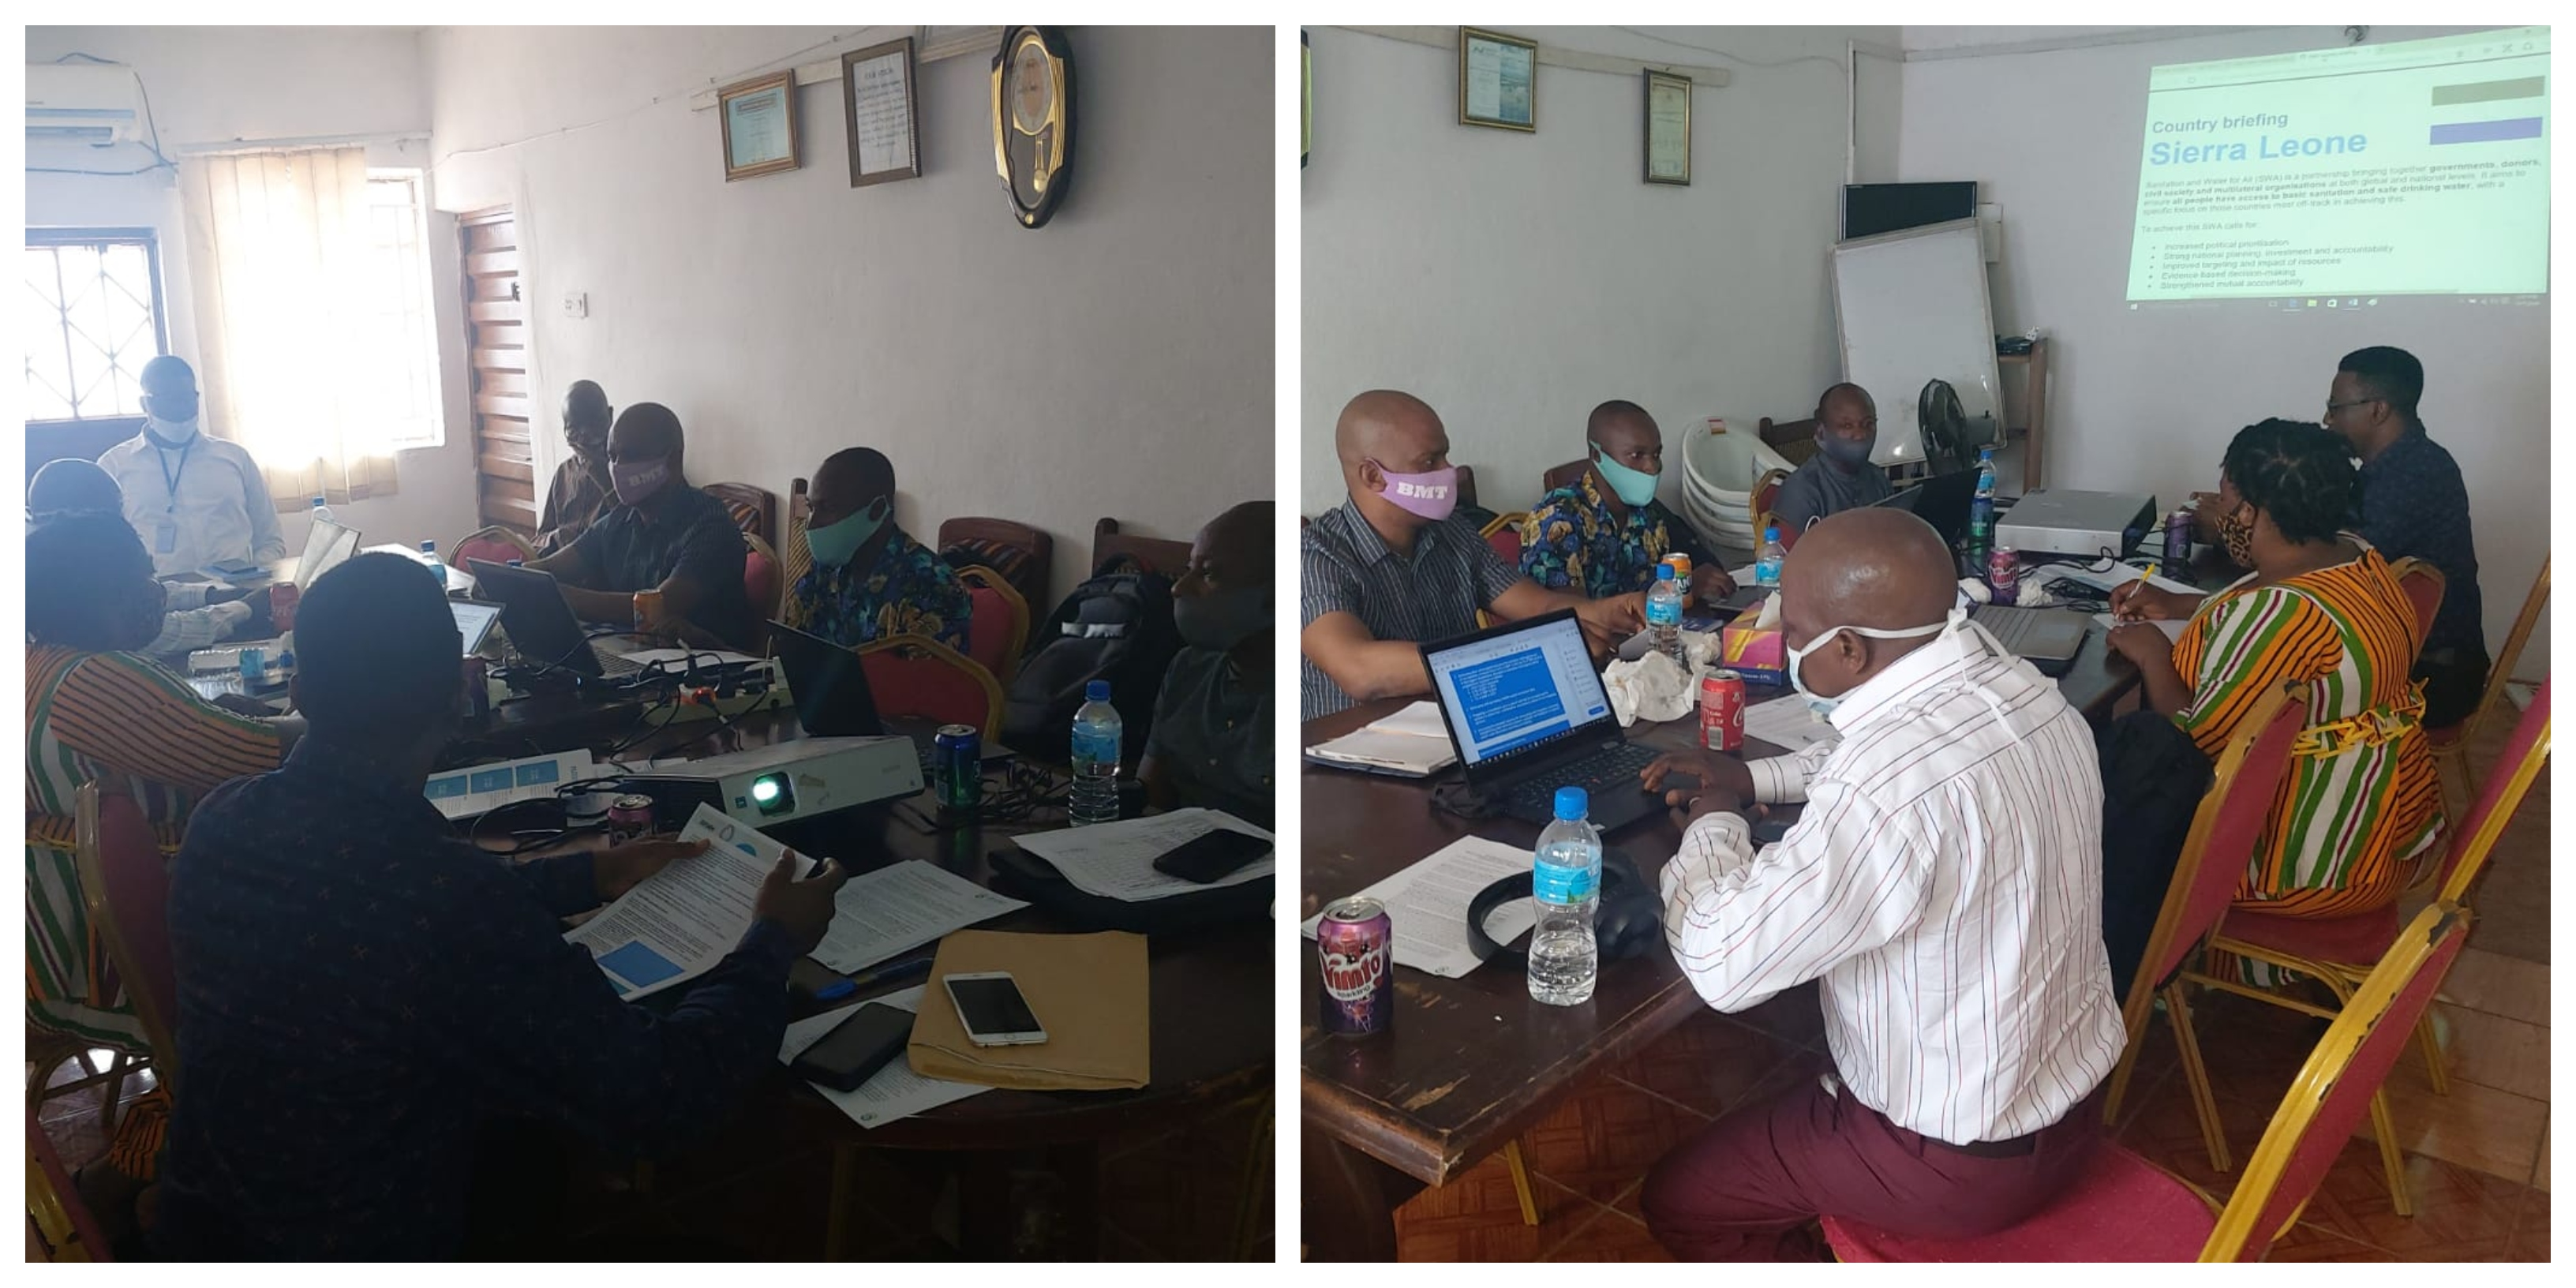 Sierra Leone FMM meeting-1